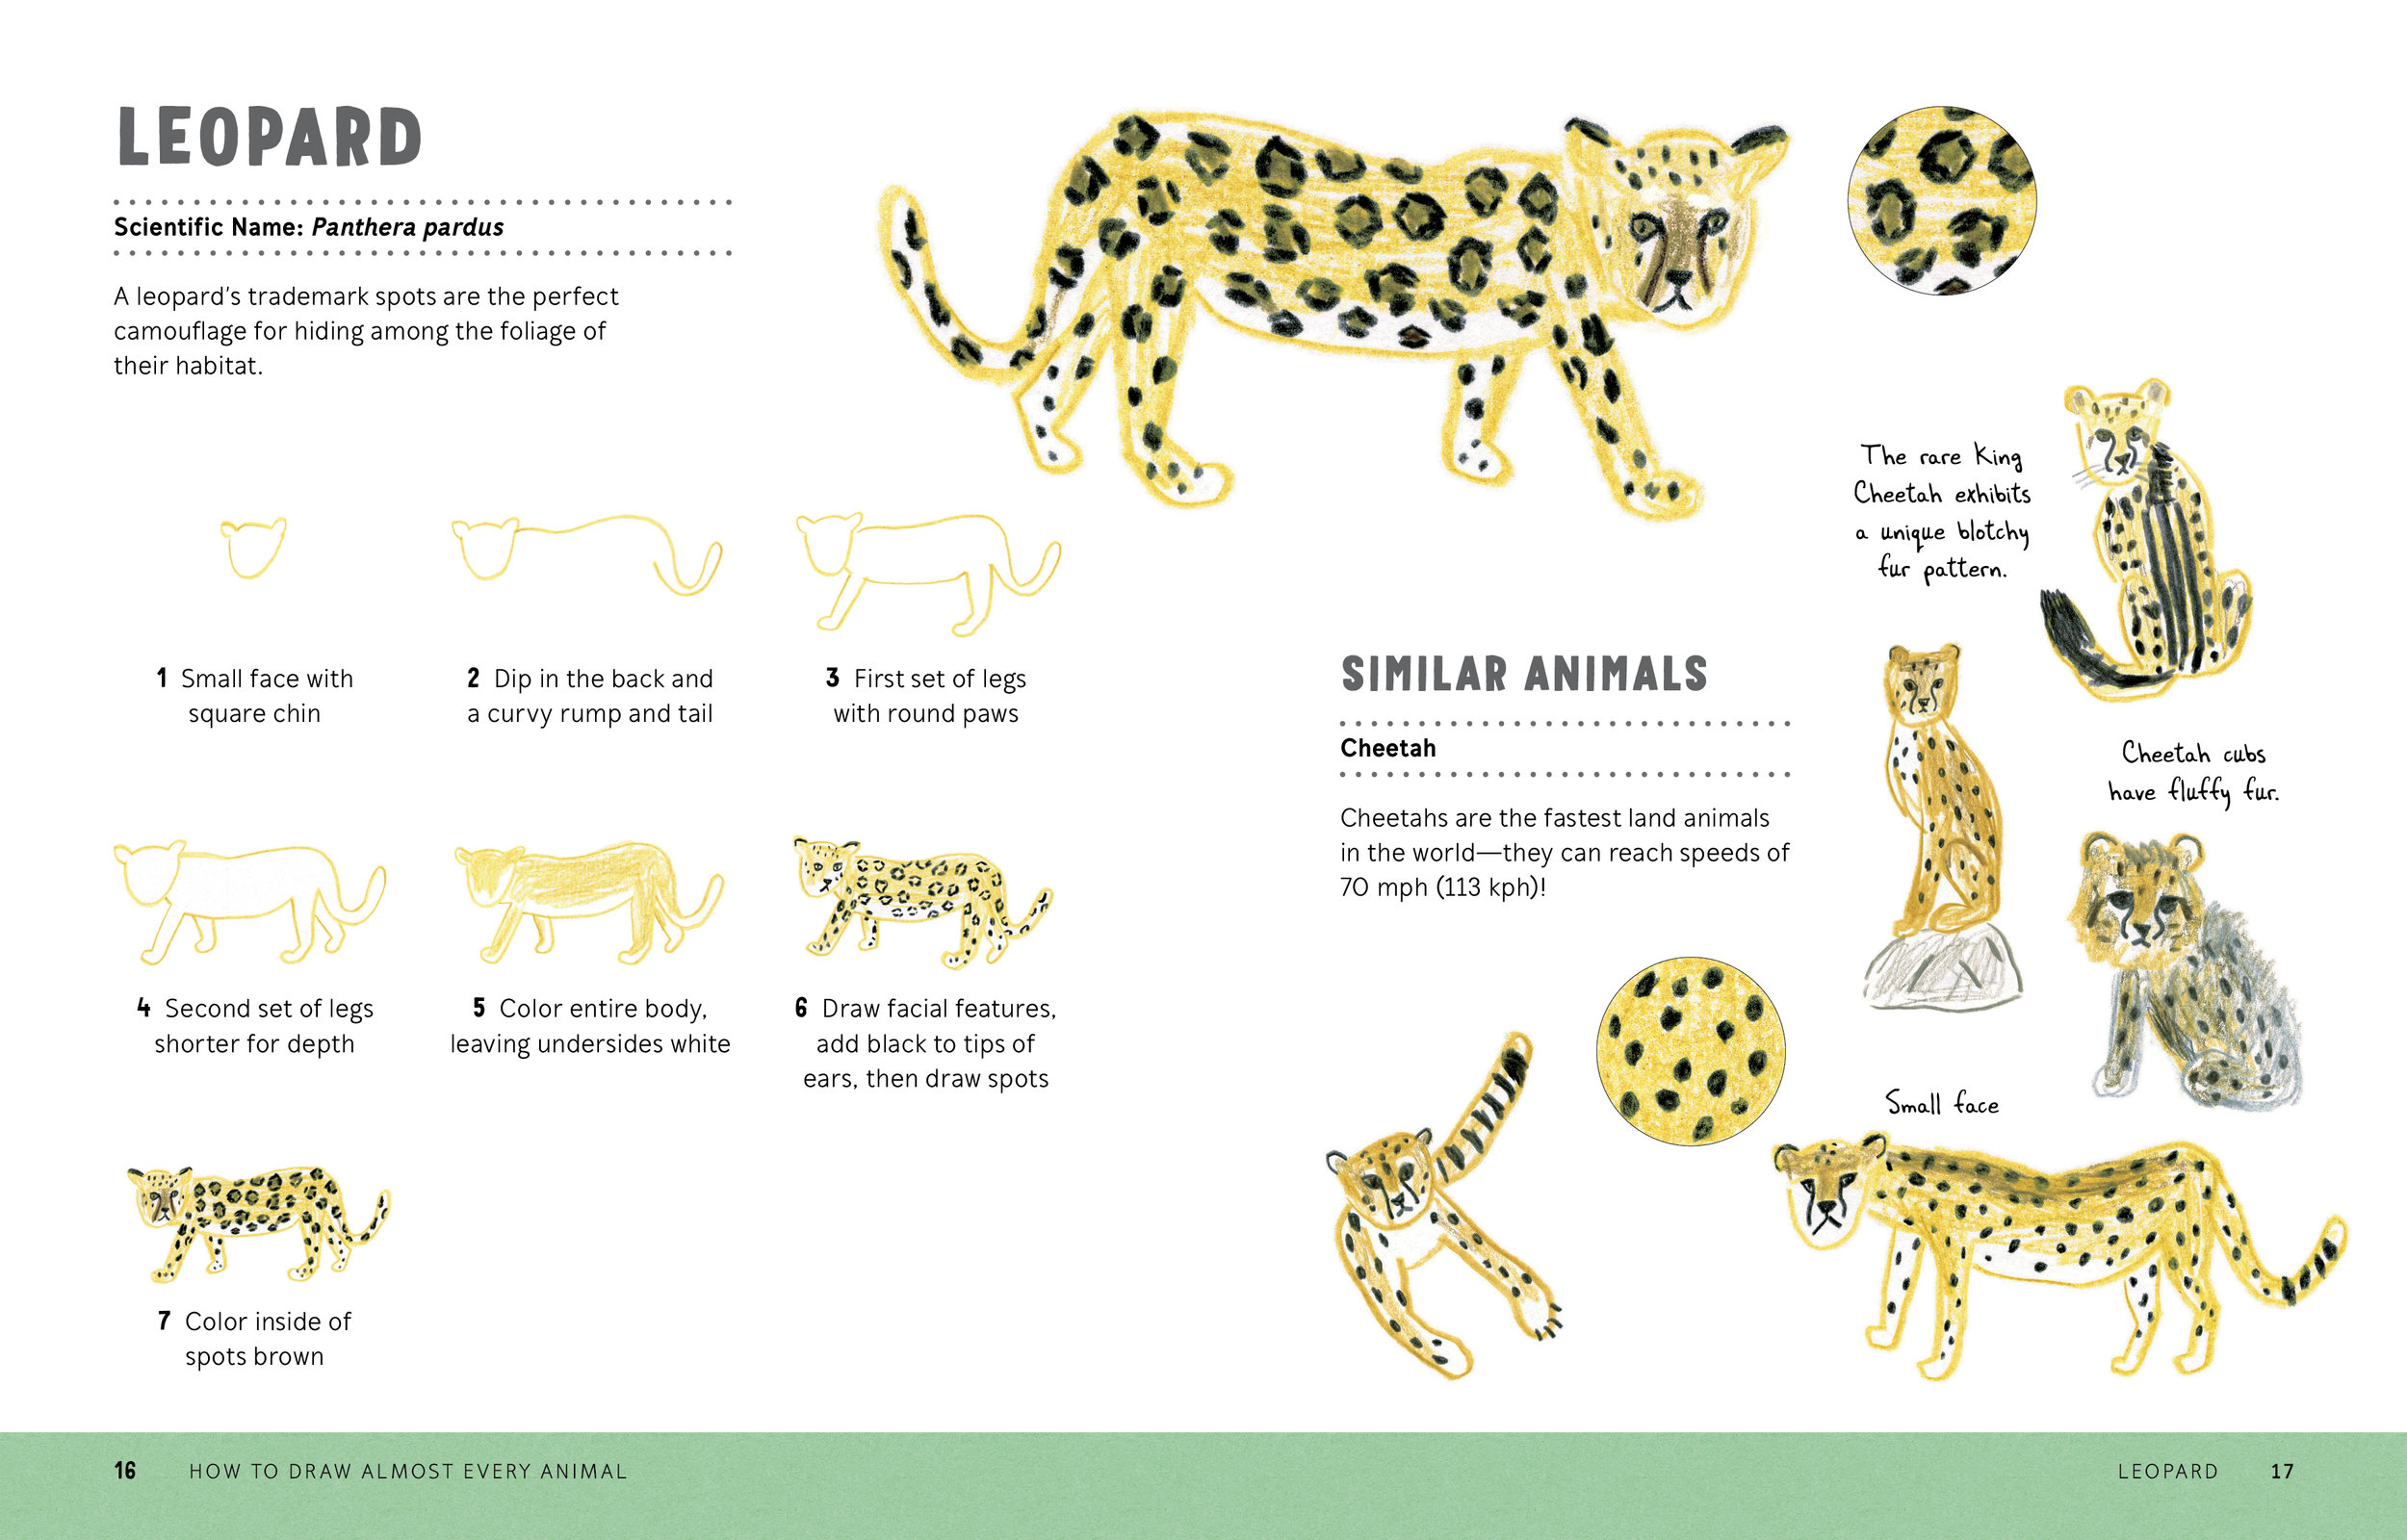 How to Draw Almost Every Animal 16.17.jpg